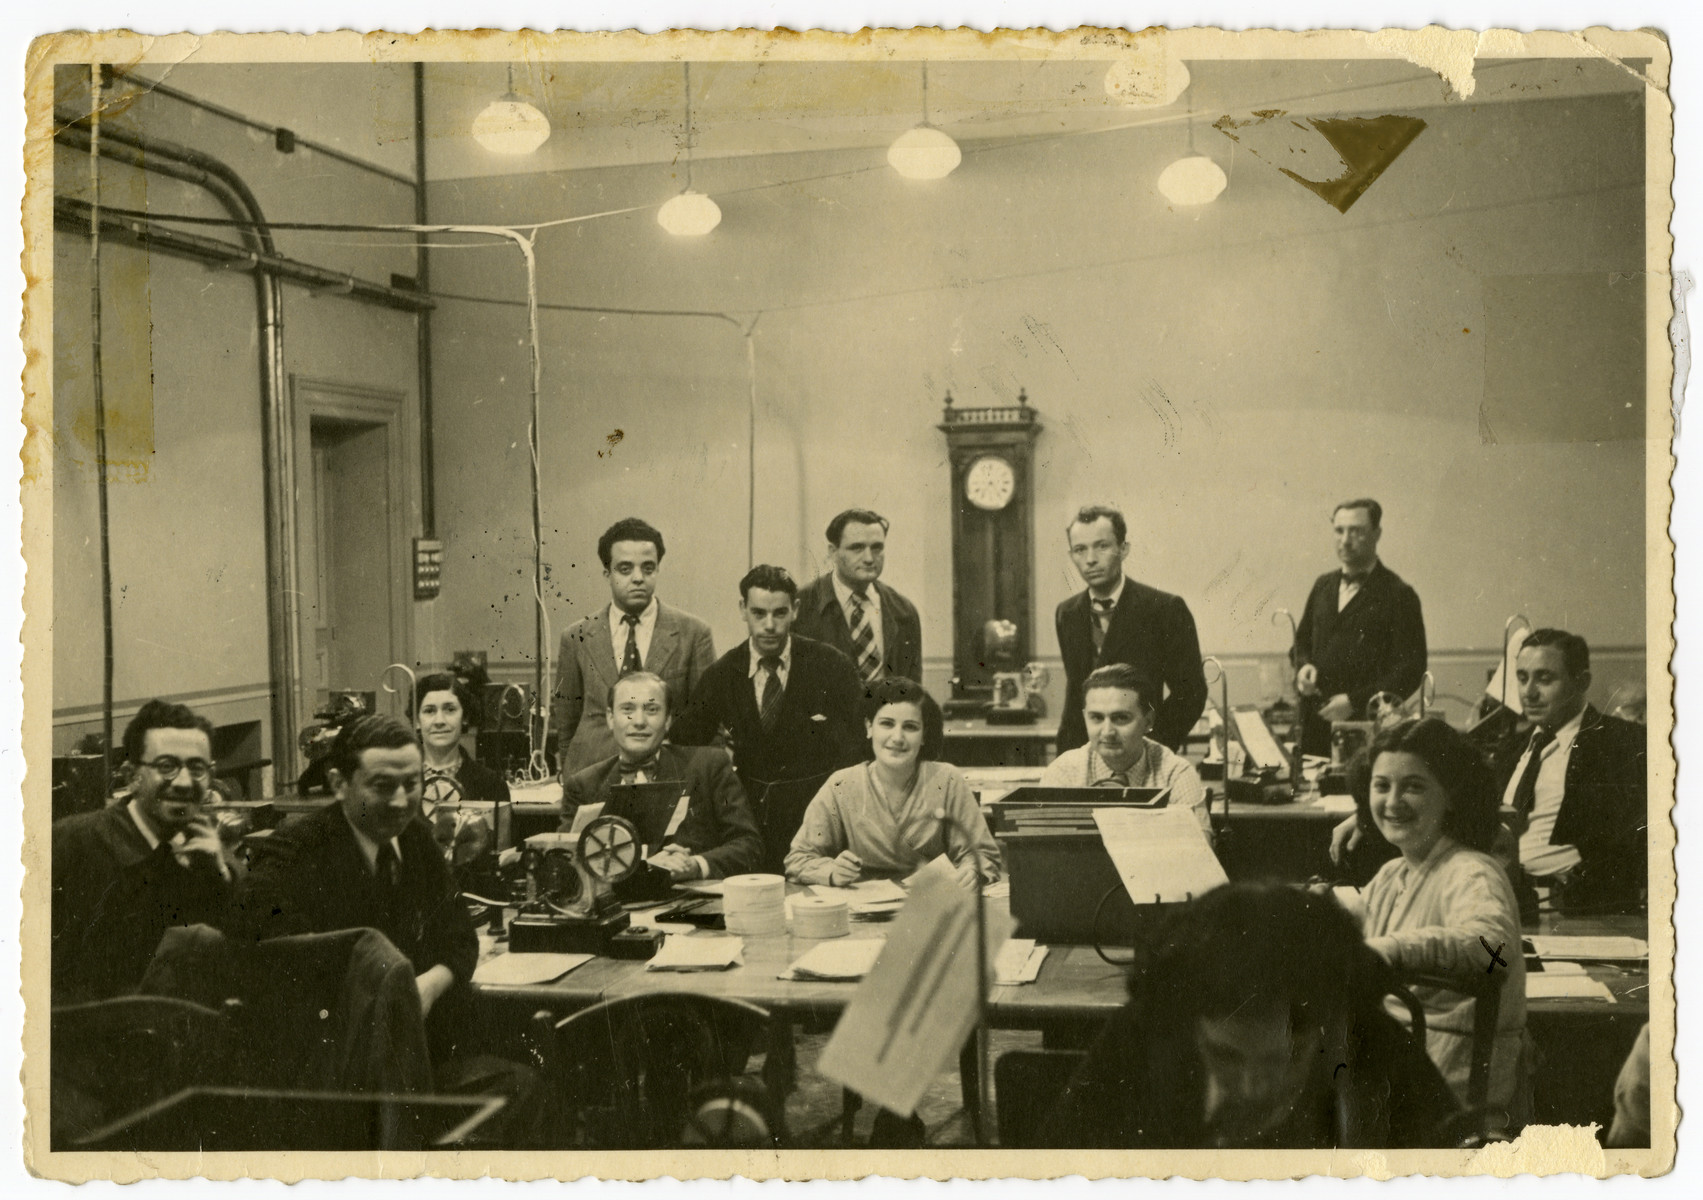 Workers of the Central Telegraph Office in Tunis operate their teletypes.  Arlette el Haik (later Benichou) is seated in the right hand corner.